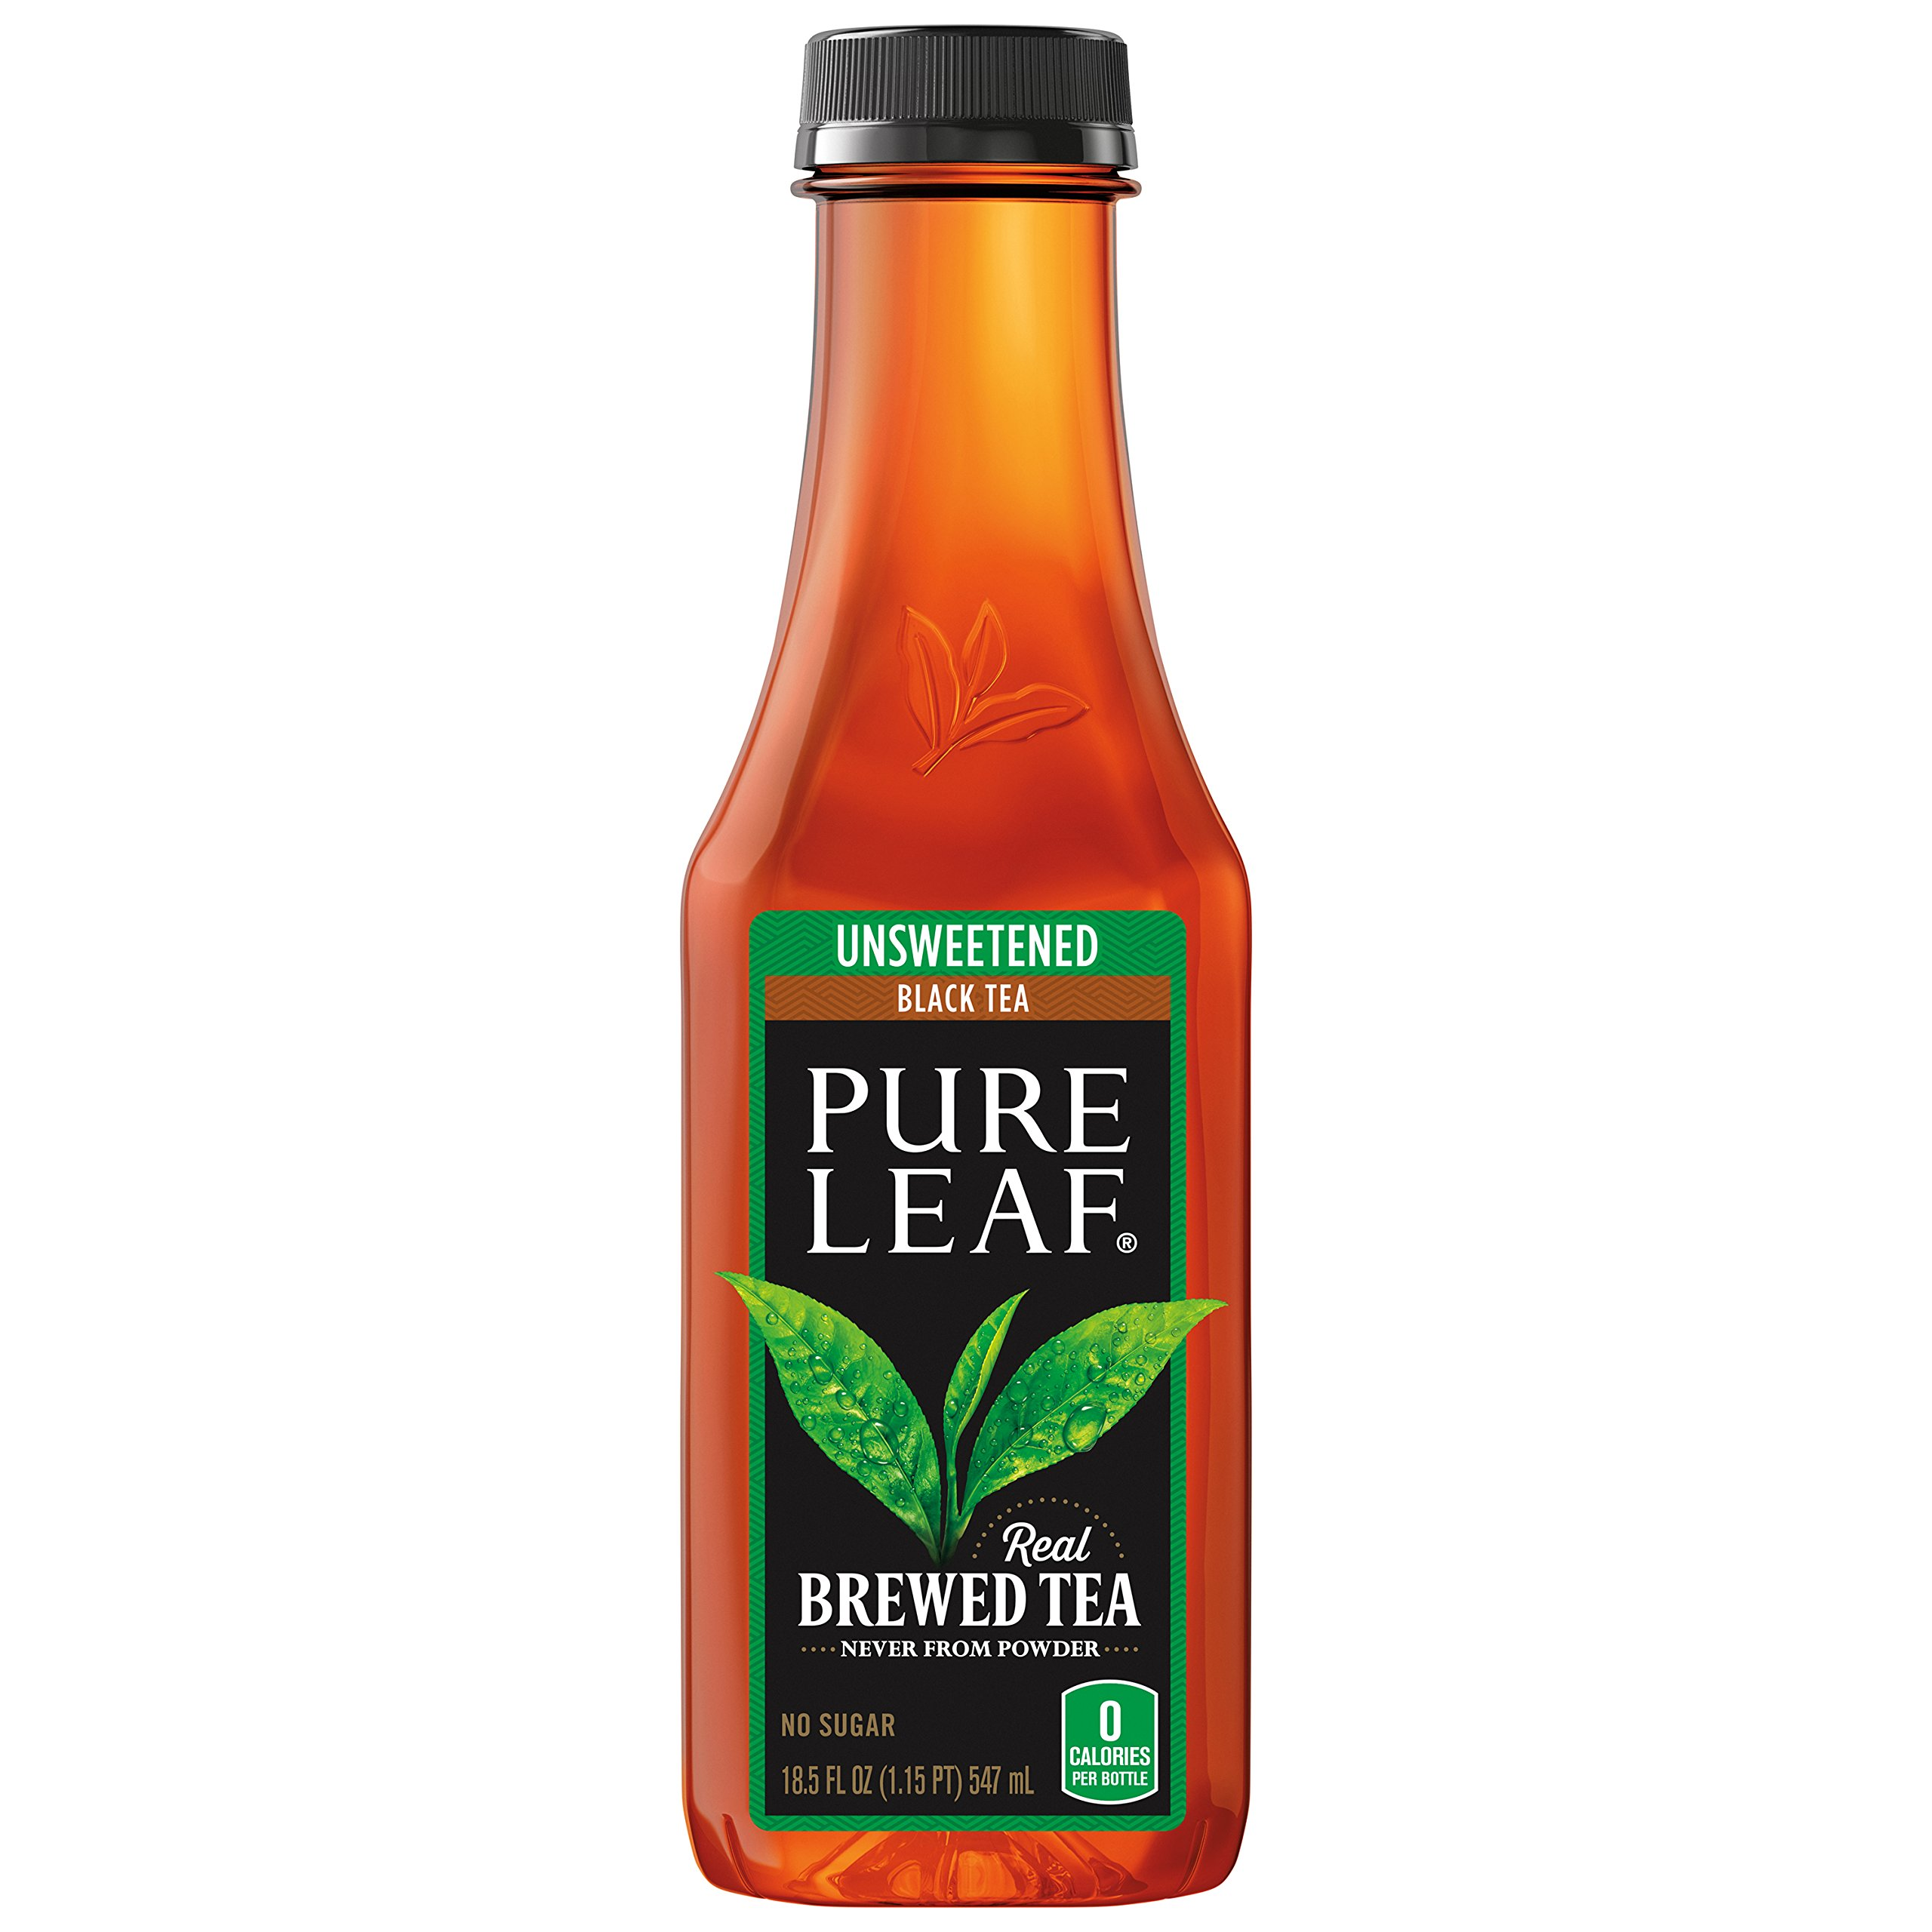 Pure Leaf Iced Tea, Unsweetened, Real Brewed Black Tea, 0 Calories, 18.5 Ounce (Pack of 12) by Pure Leaf (Image #5)